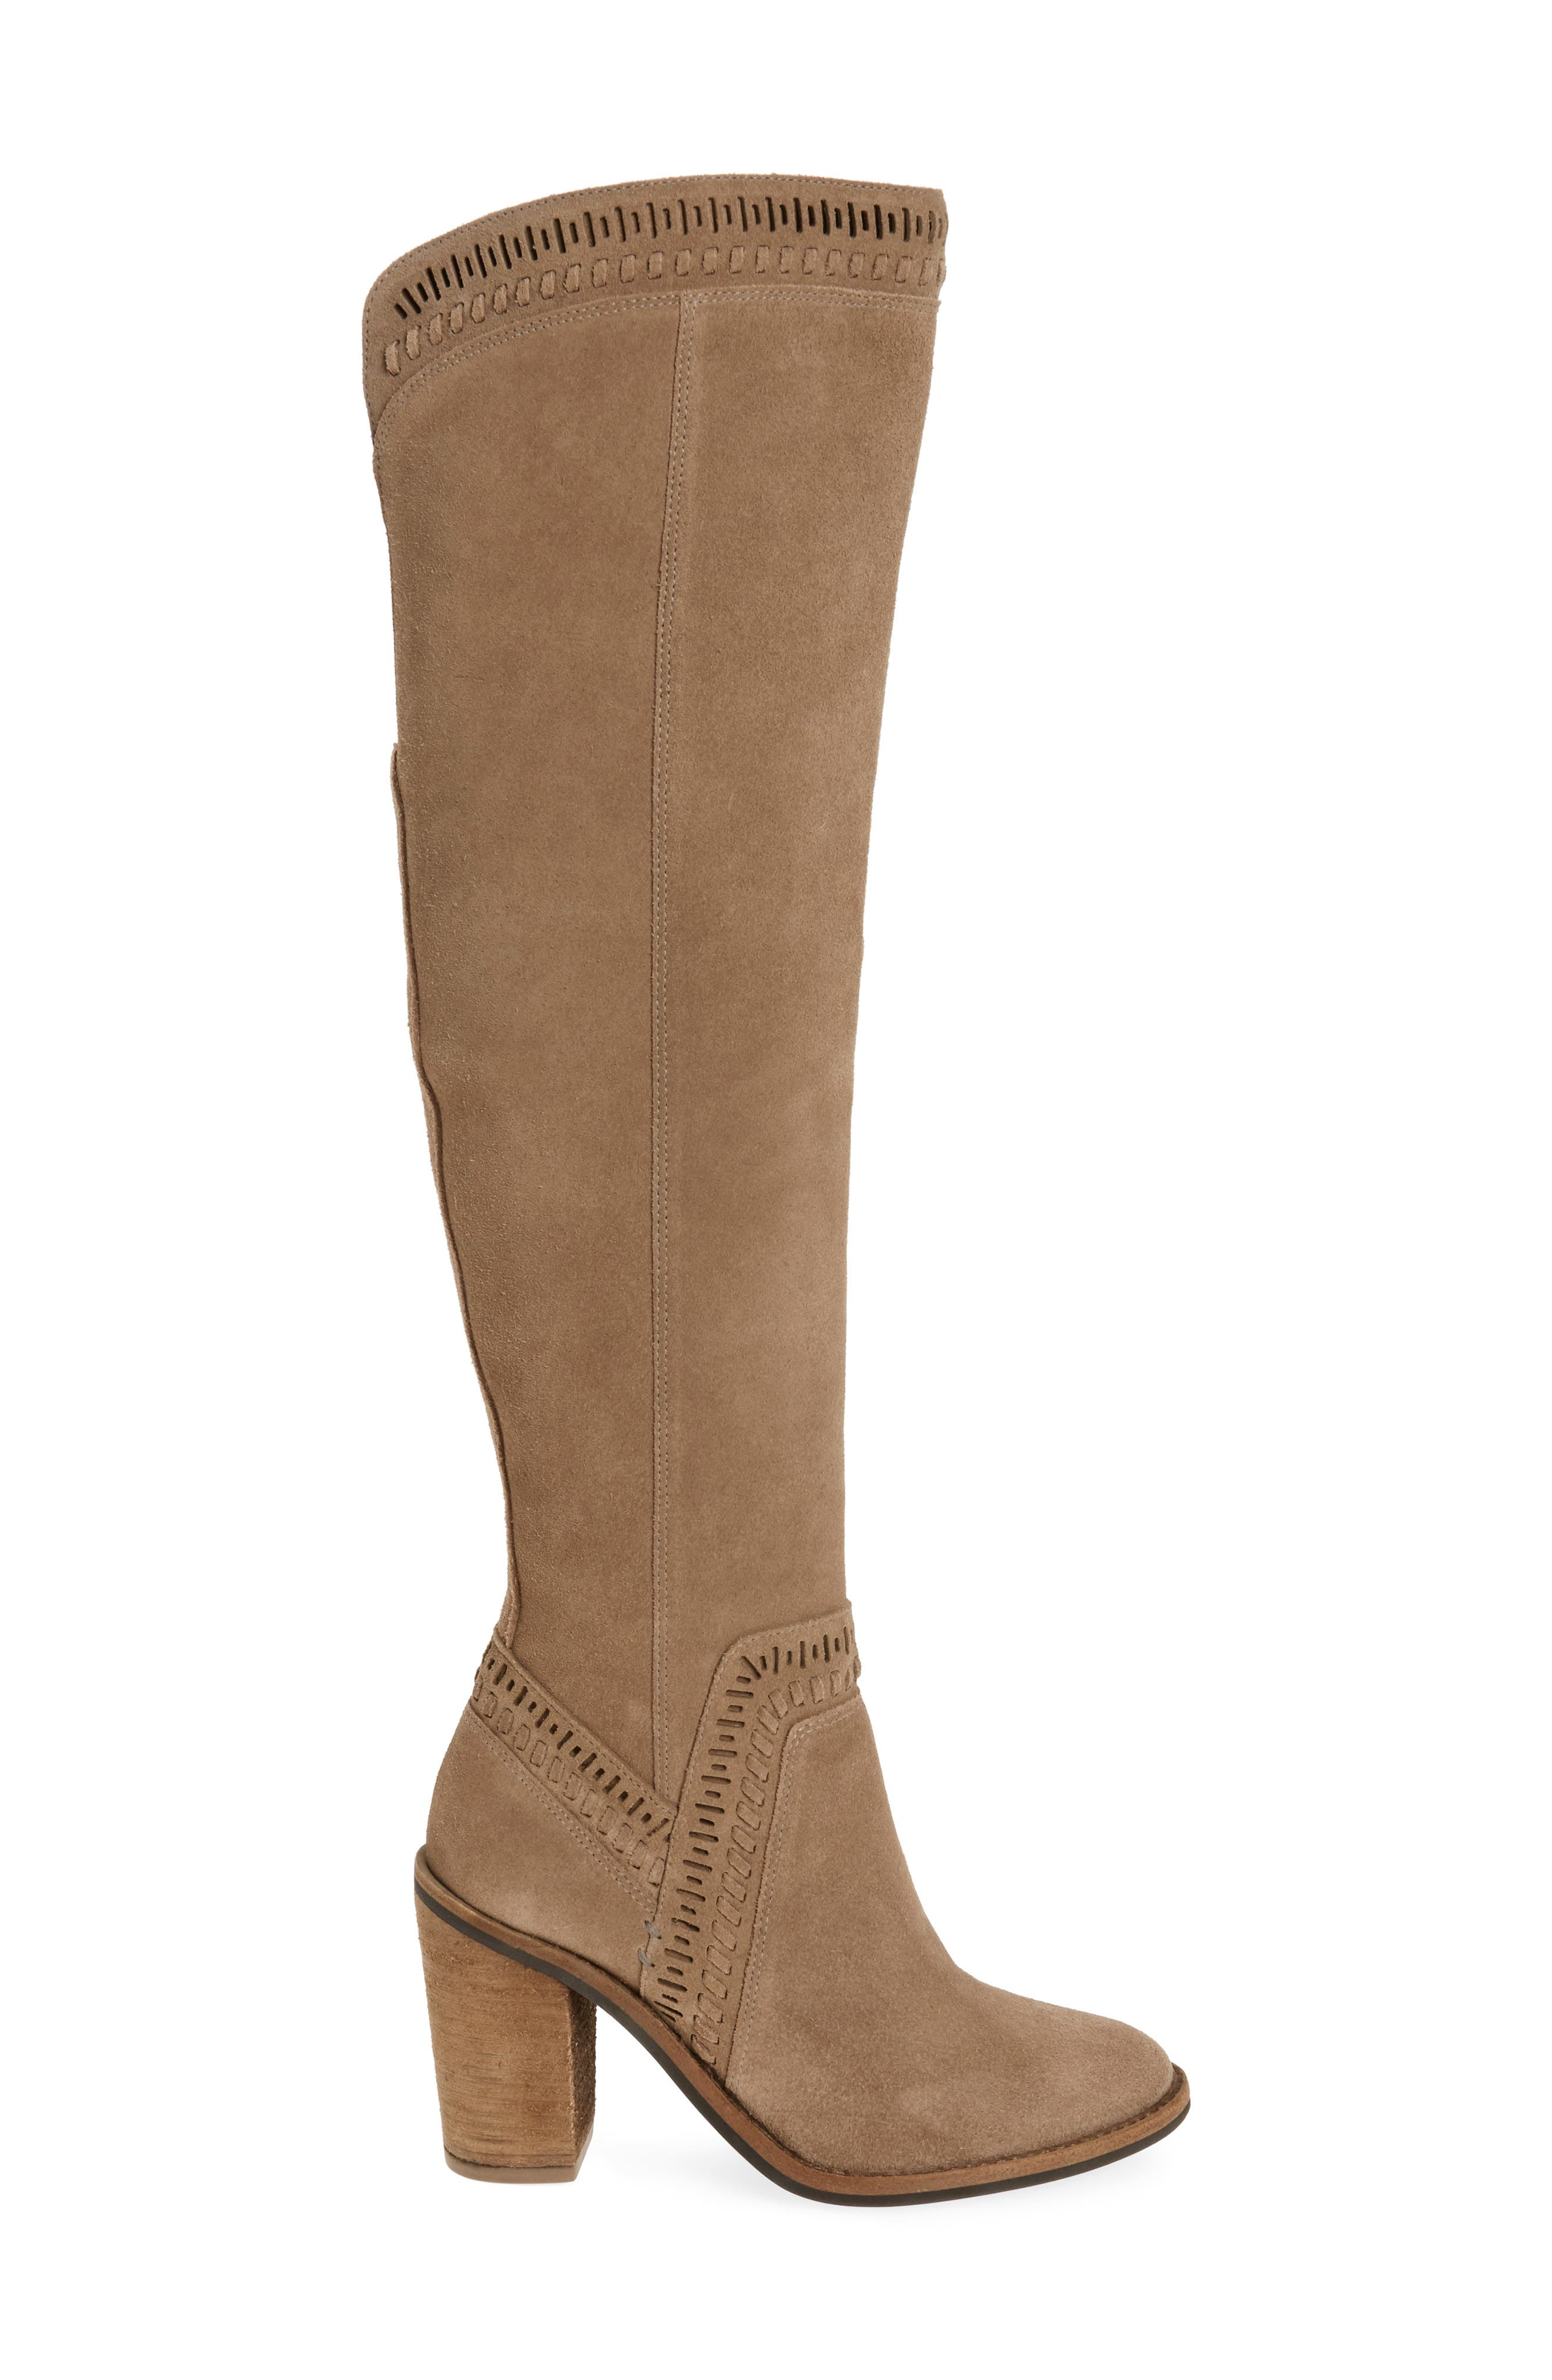 Madolee Over the Knee Boot,                             Alternate thumbnail 3, color,                             Foxy